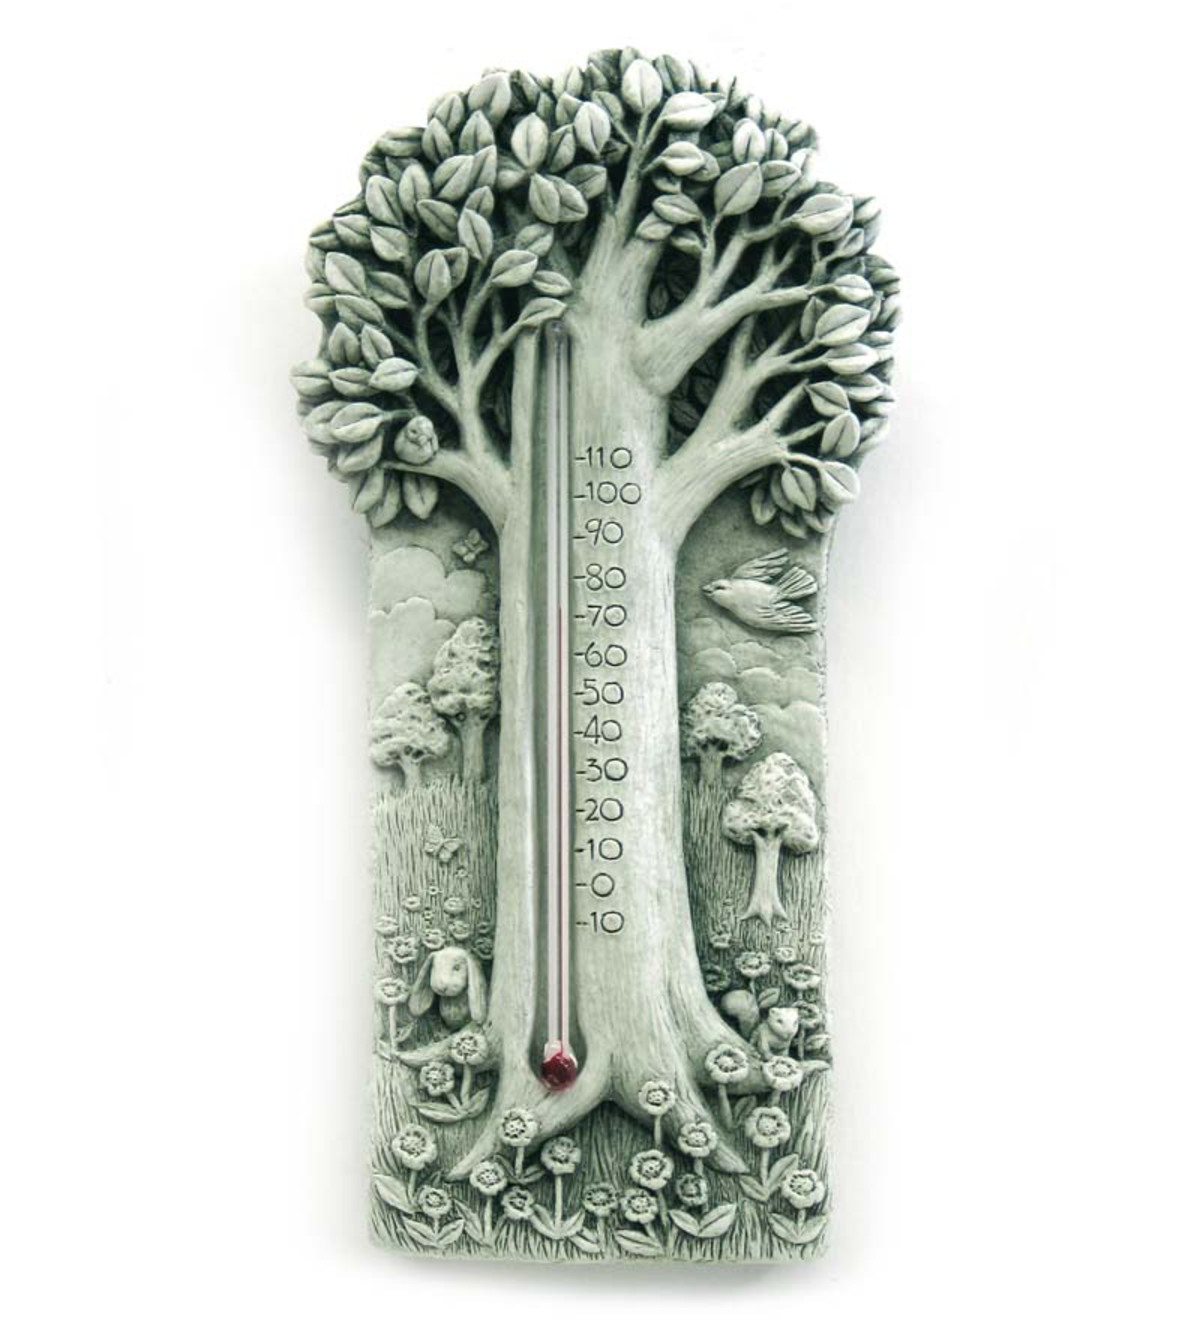 Stone Summer Shade Thermometer by Carruth Studio